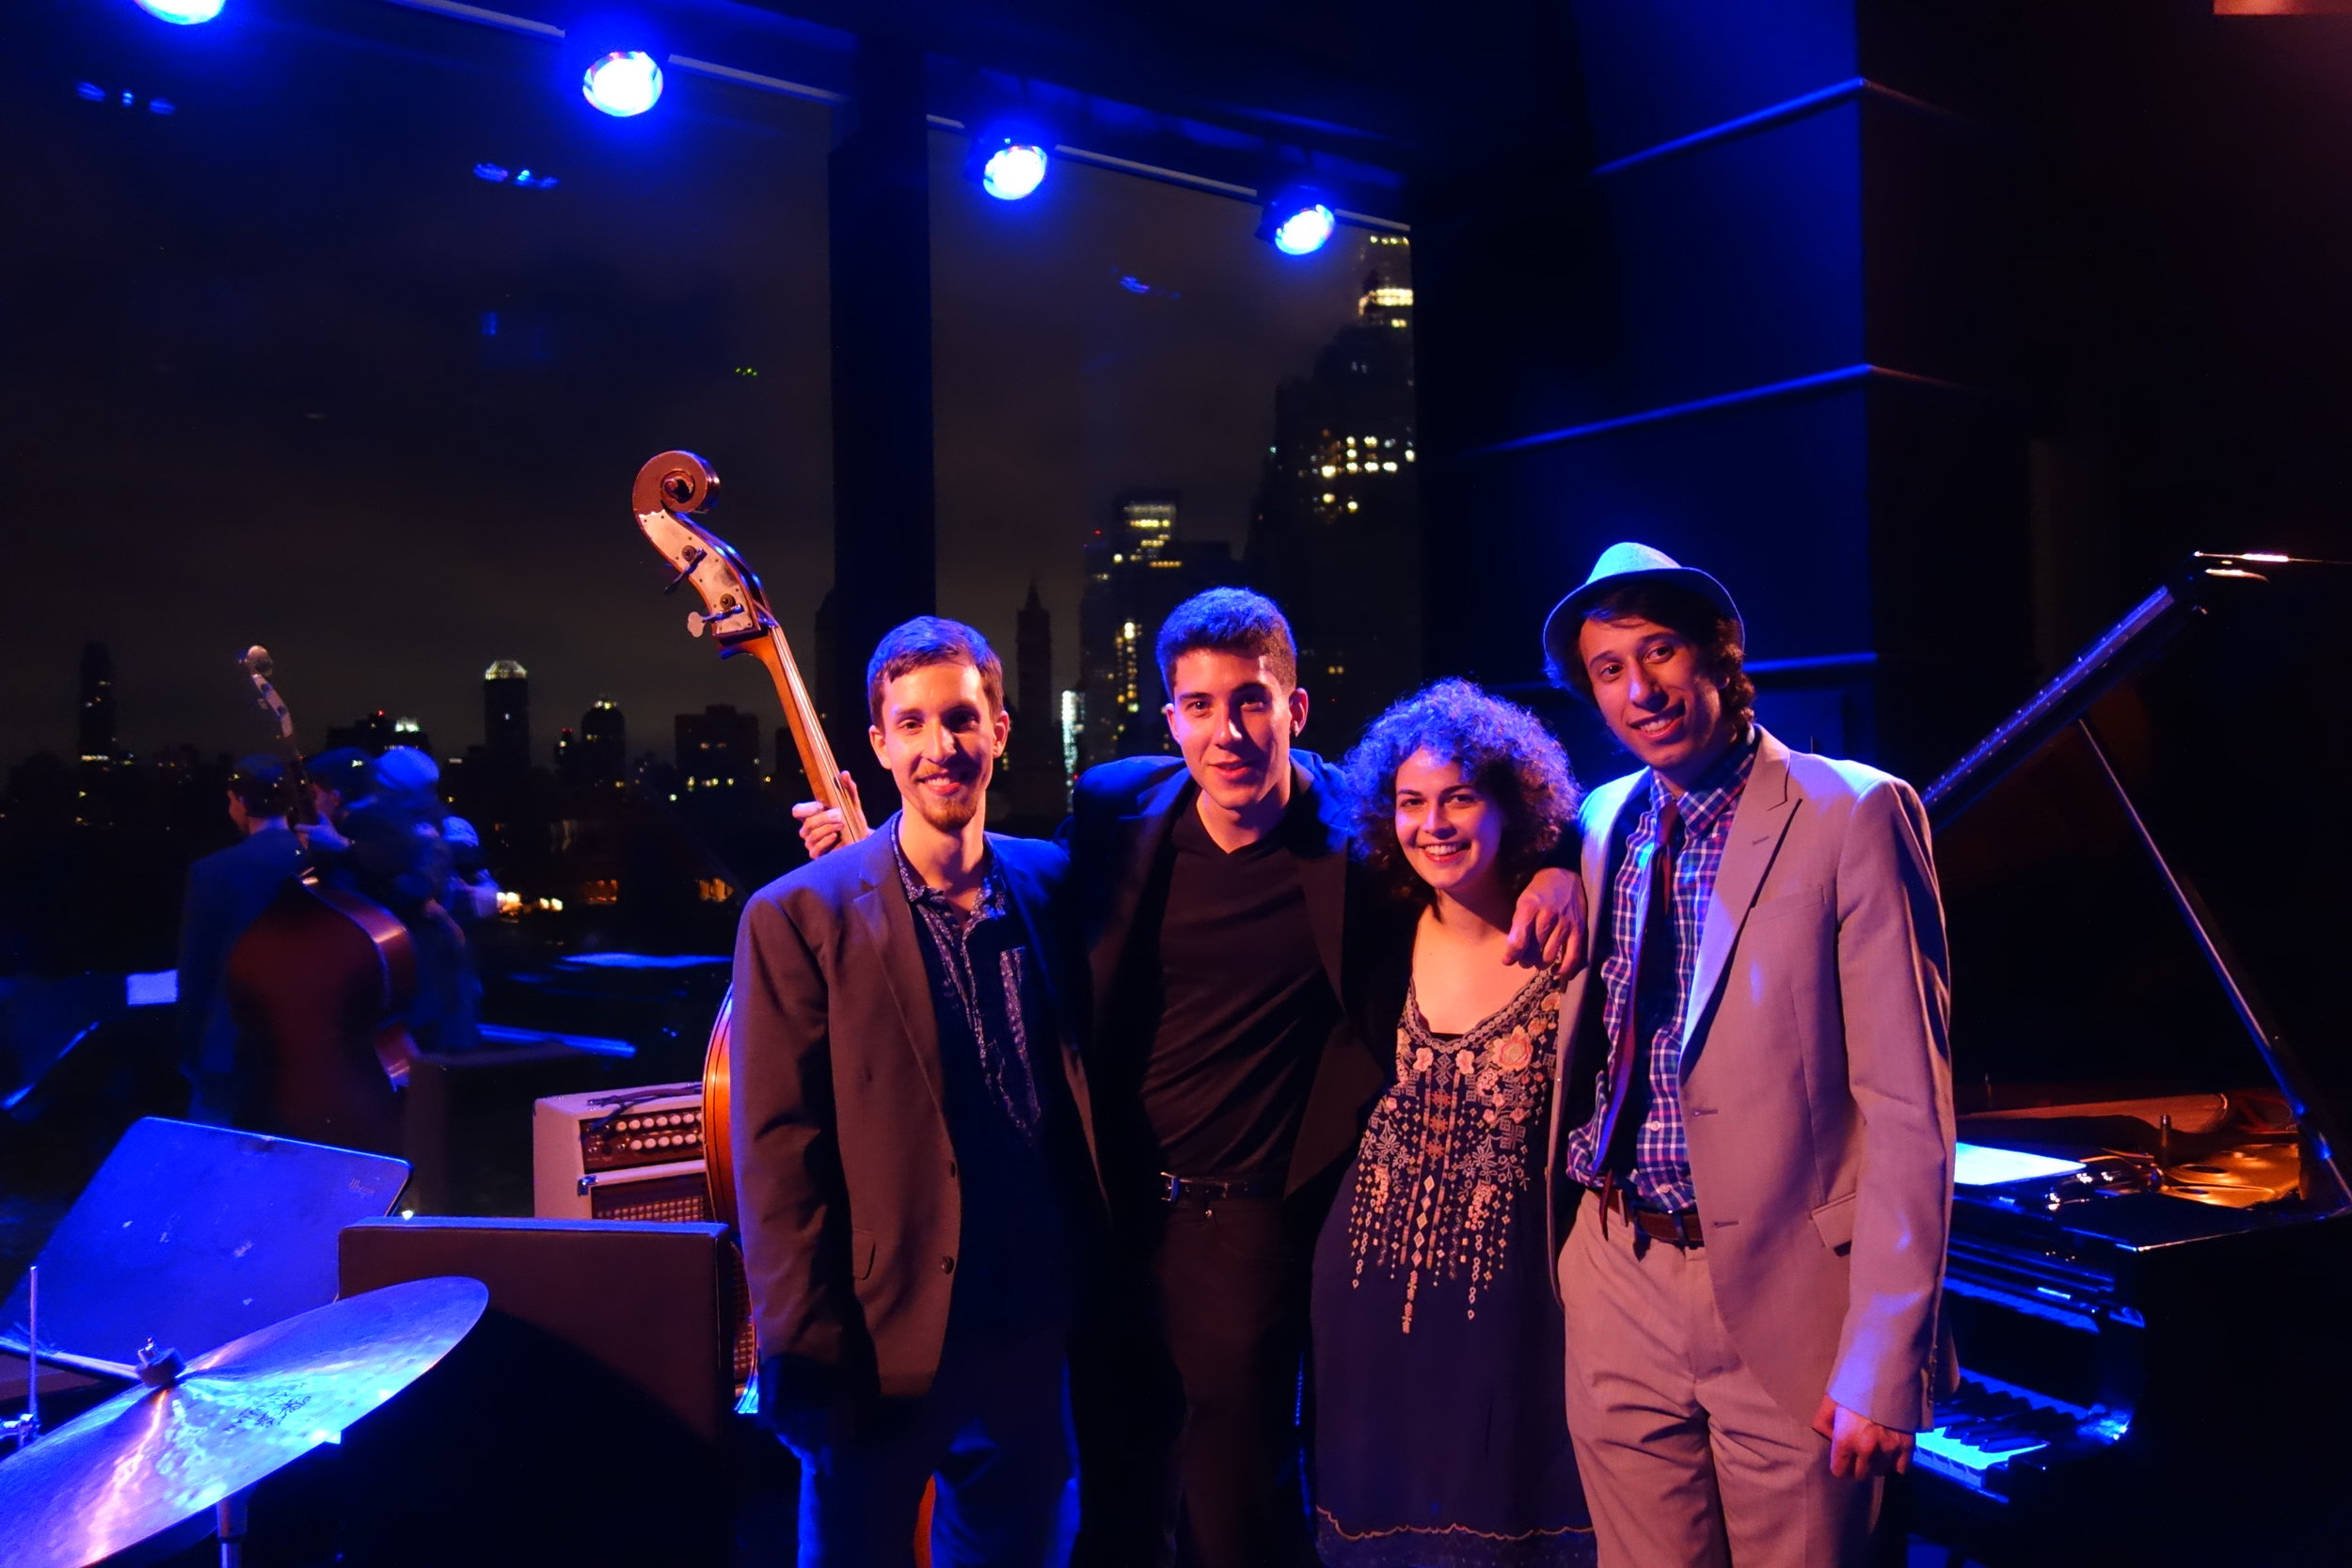 After the gig with the Zoe Obadia Quartet